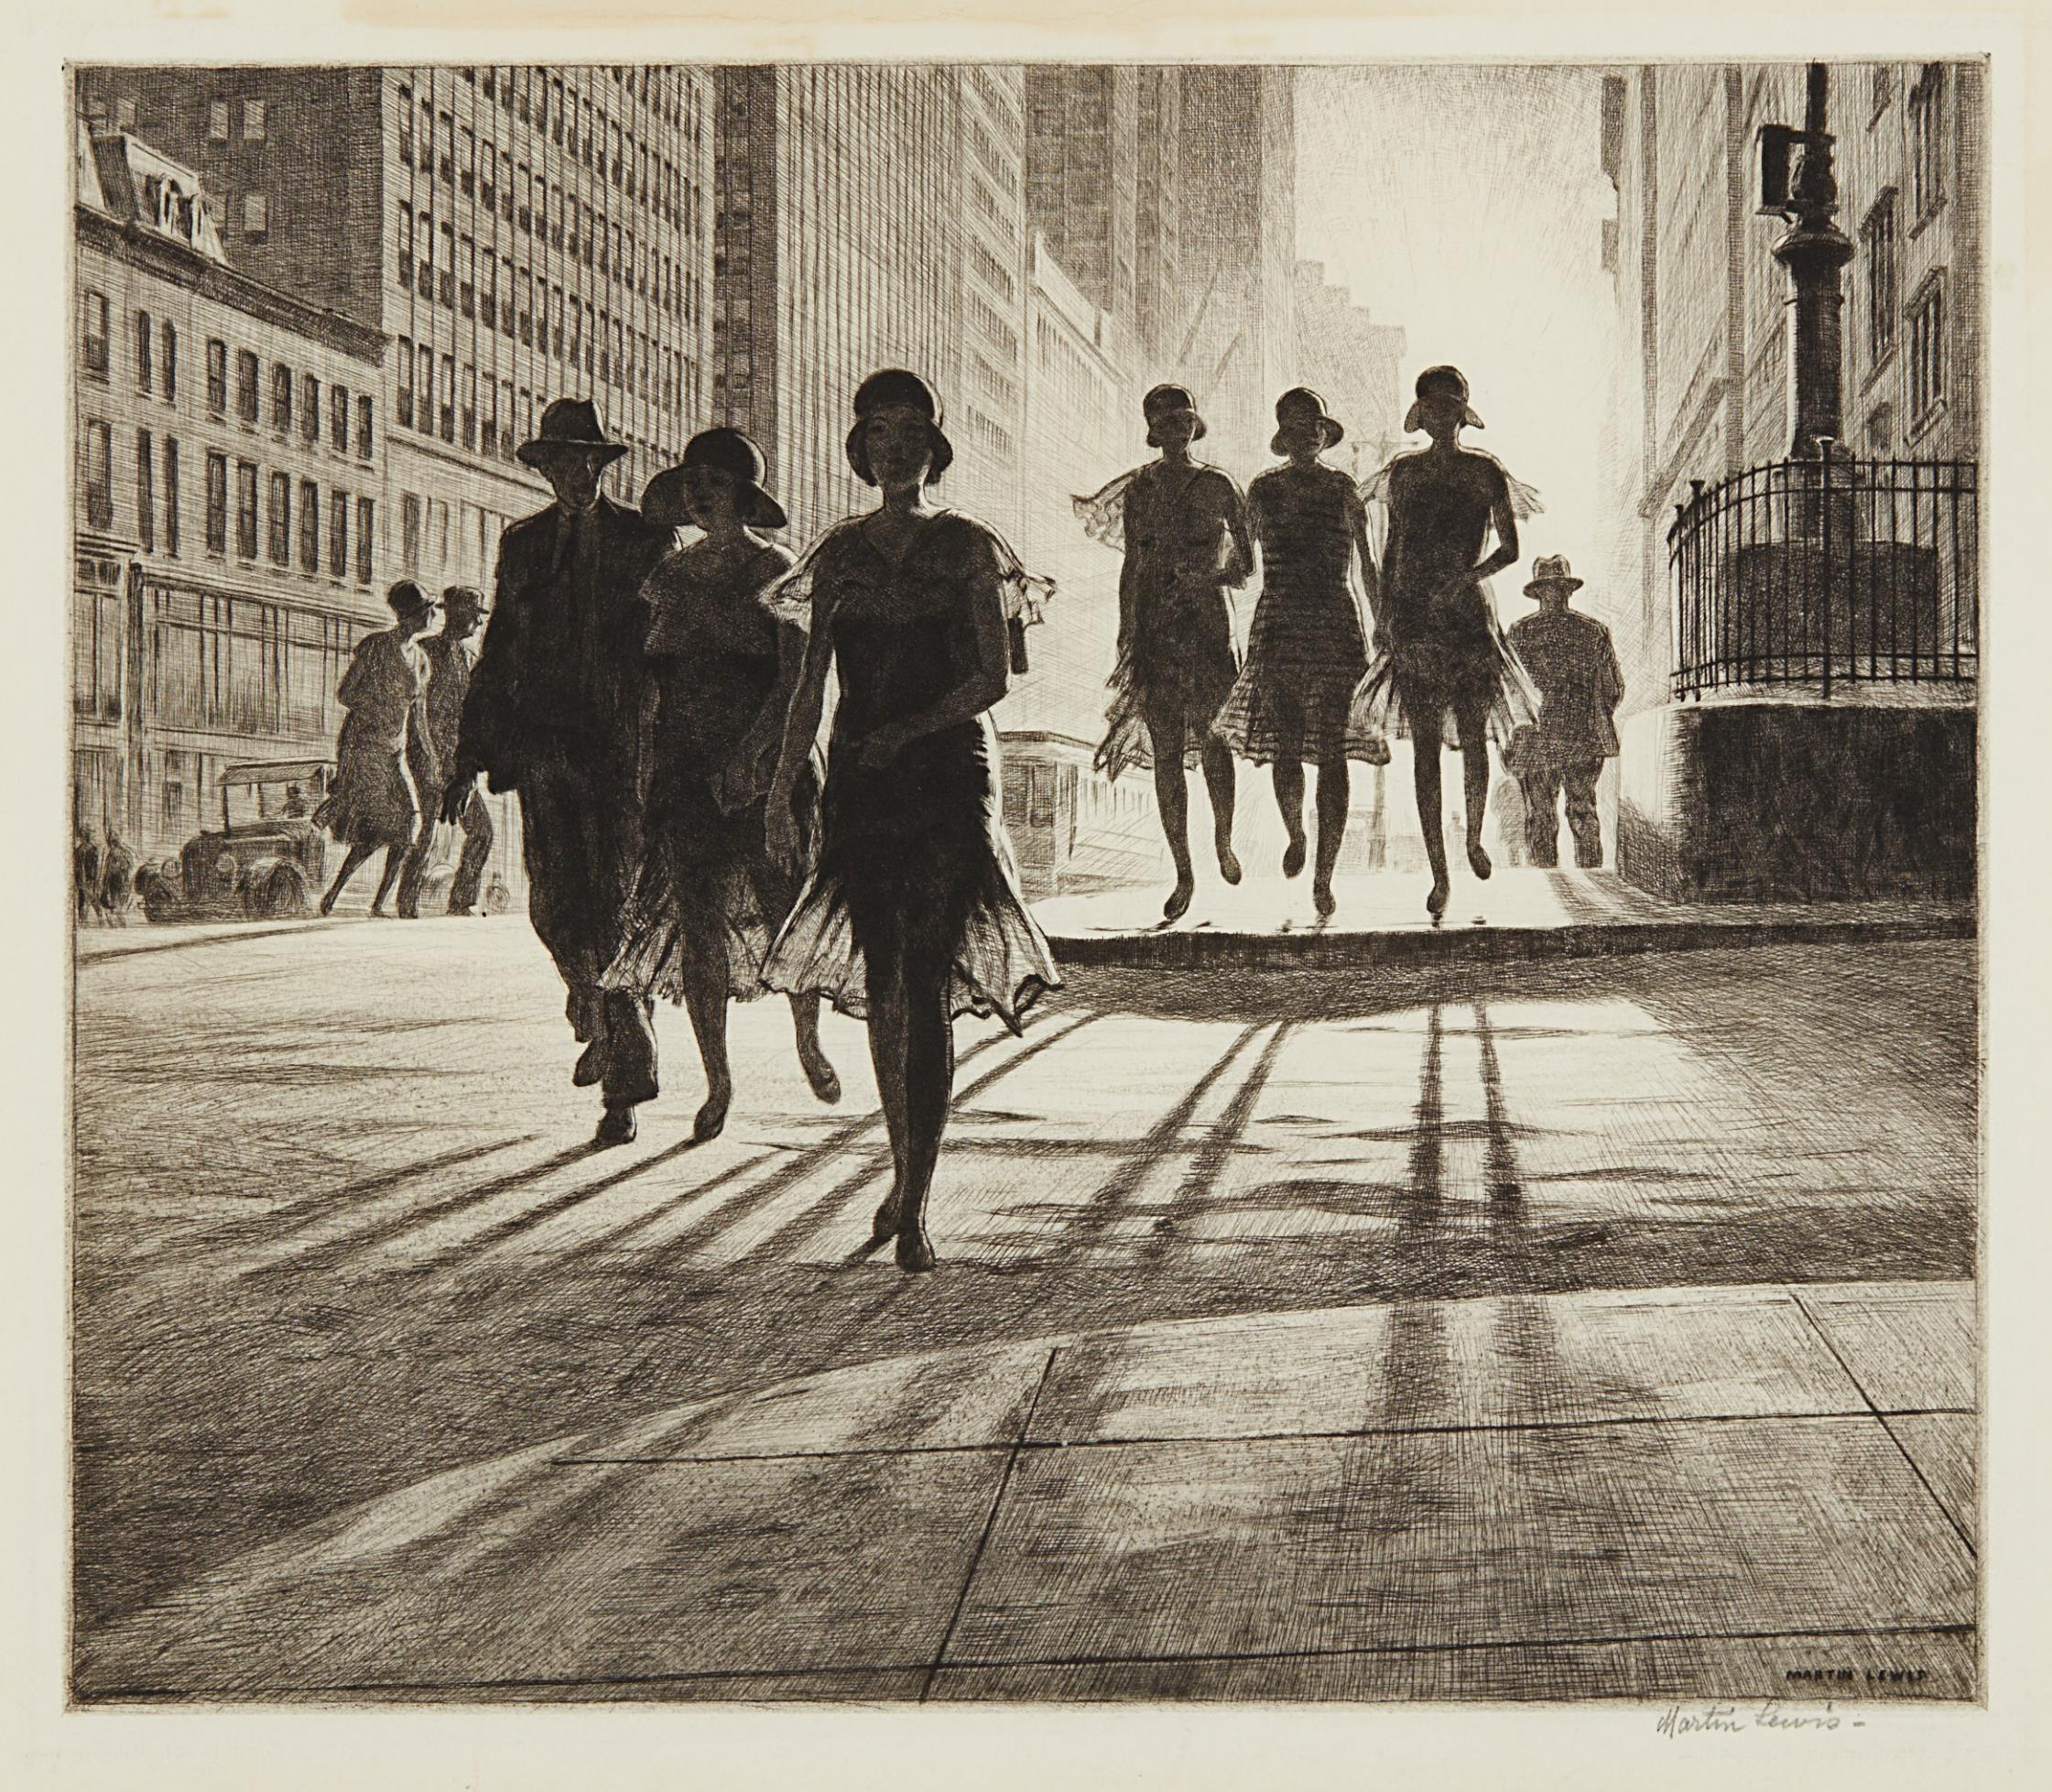 Martin Lewis-Shadow Dance-1930